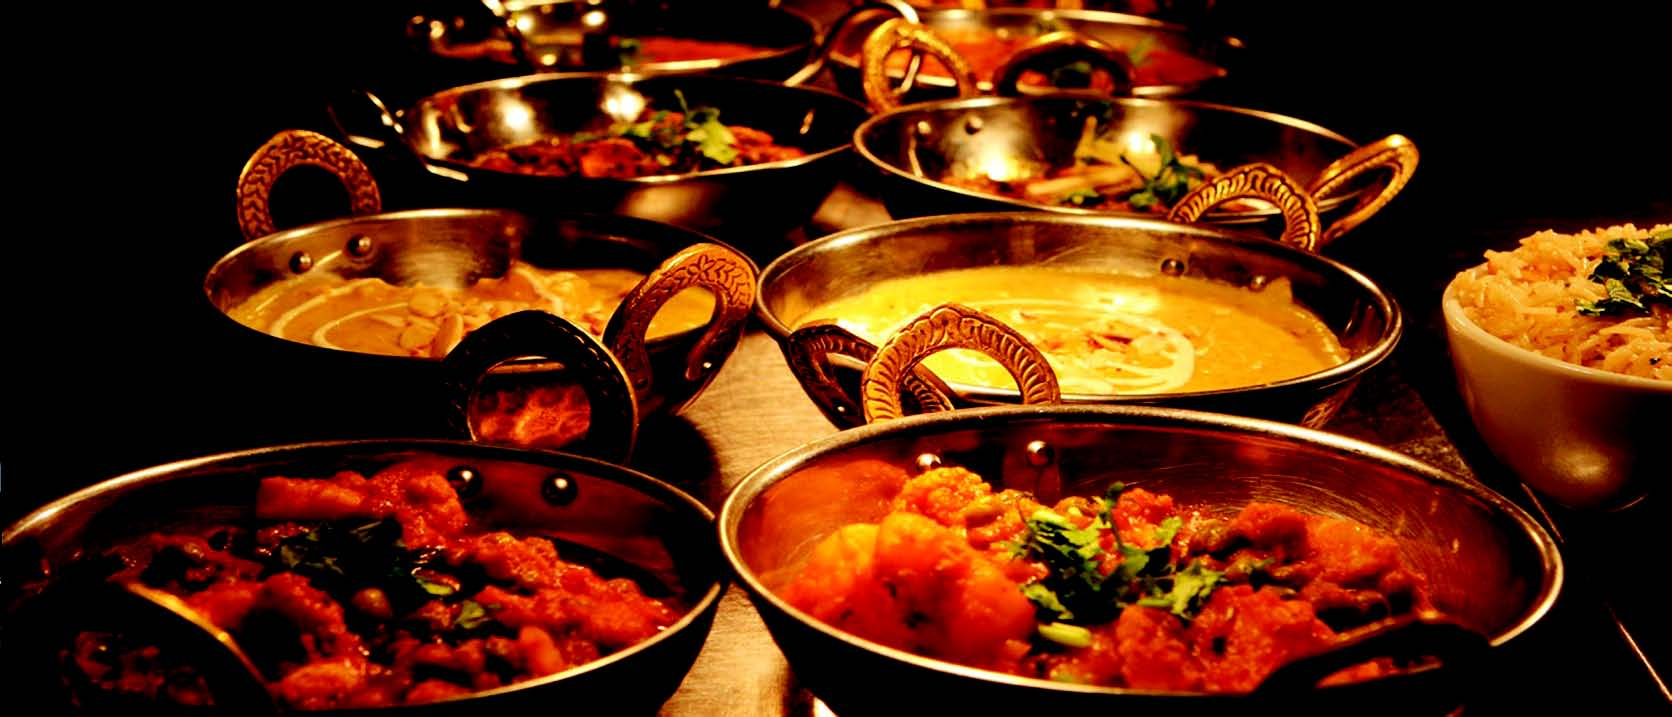 Hospitality biz india standardisation of indian recipes each of the 29 states and seven union territories possess anywhere from 10 to 50 regional sub regional cuisines representing the many flavours of india forumfinder Image collections